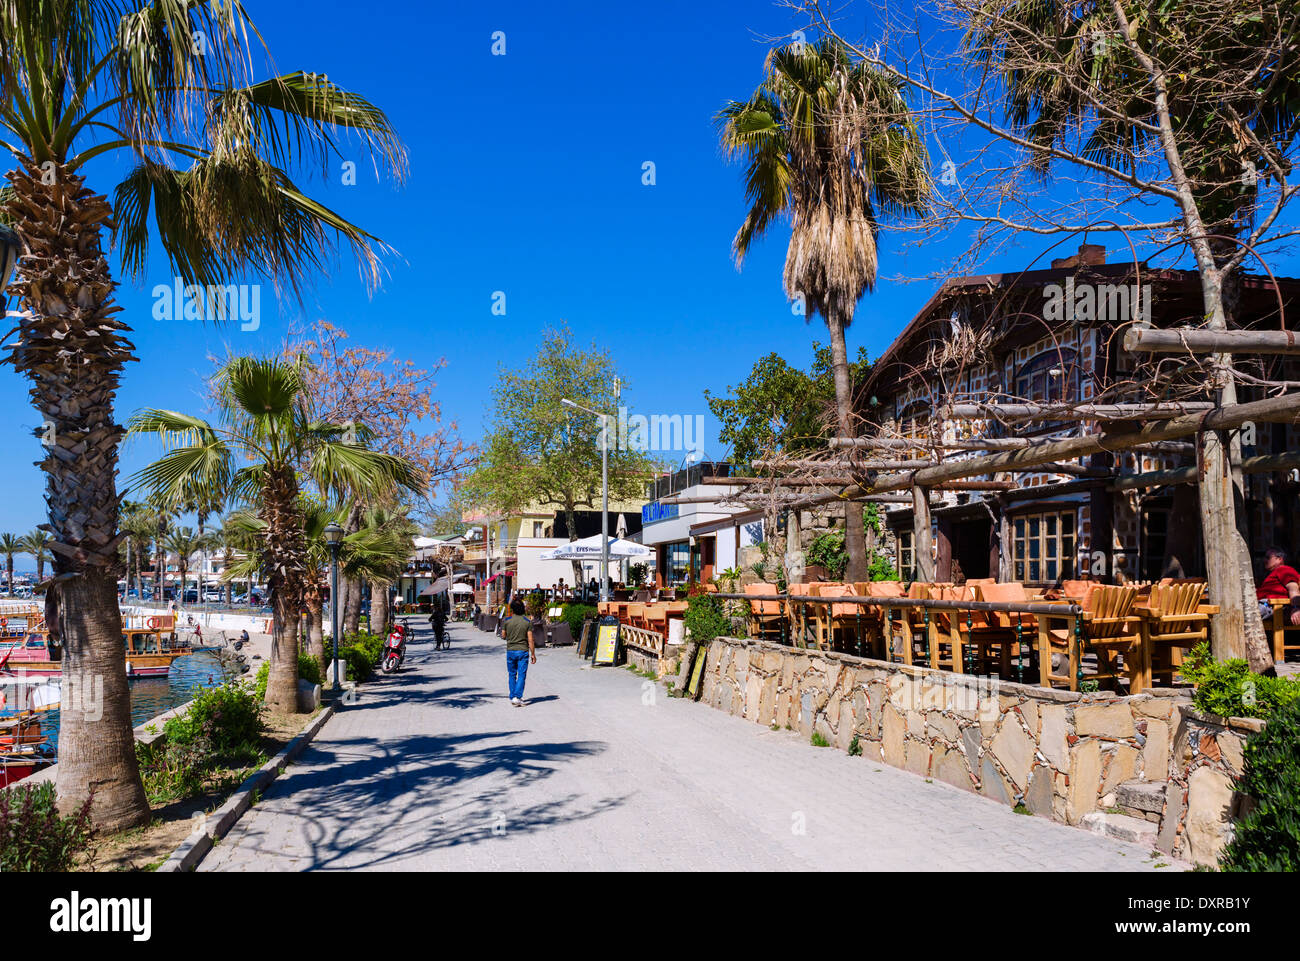 Cafe in the vieux port terra vecchia bastia corsica france stock - Cafes Bars And Restaurants Along The Harbourfront In The Old Town Side Antalya